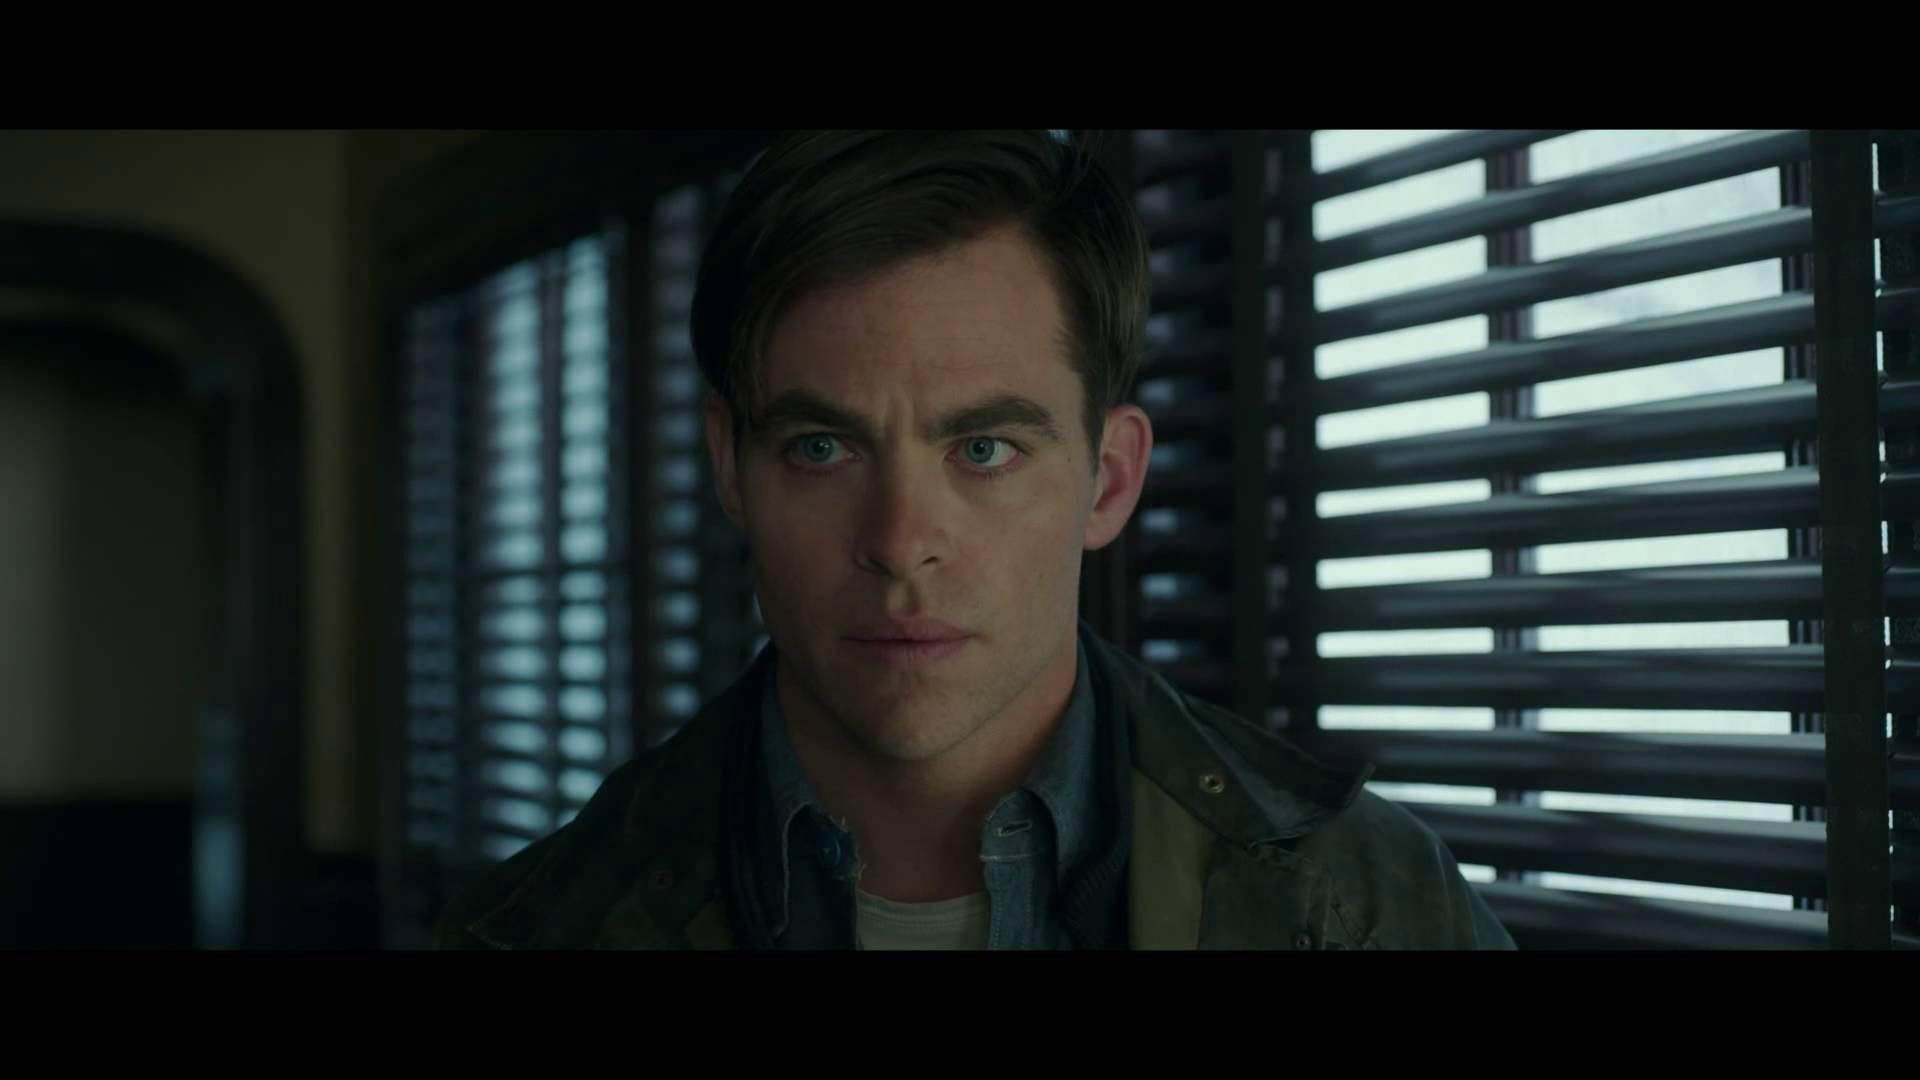 The Finest Hours Featurette